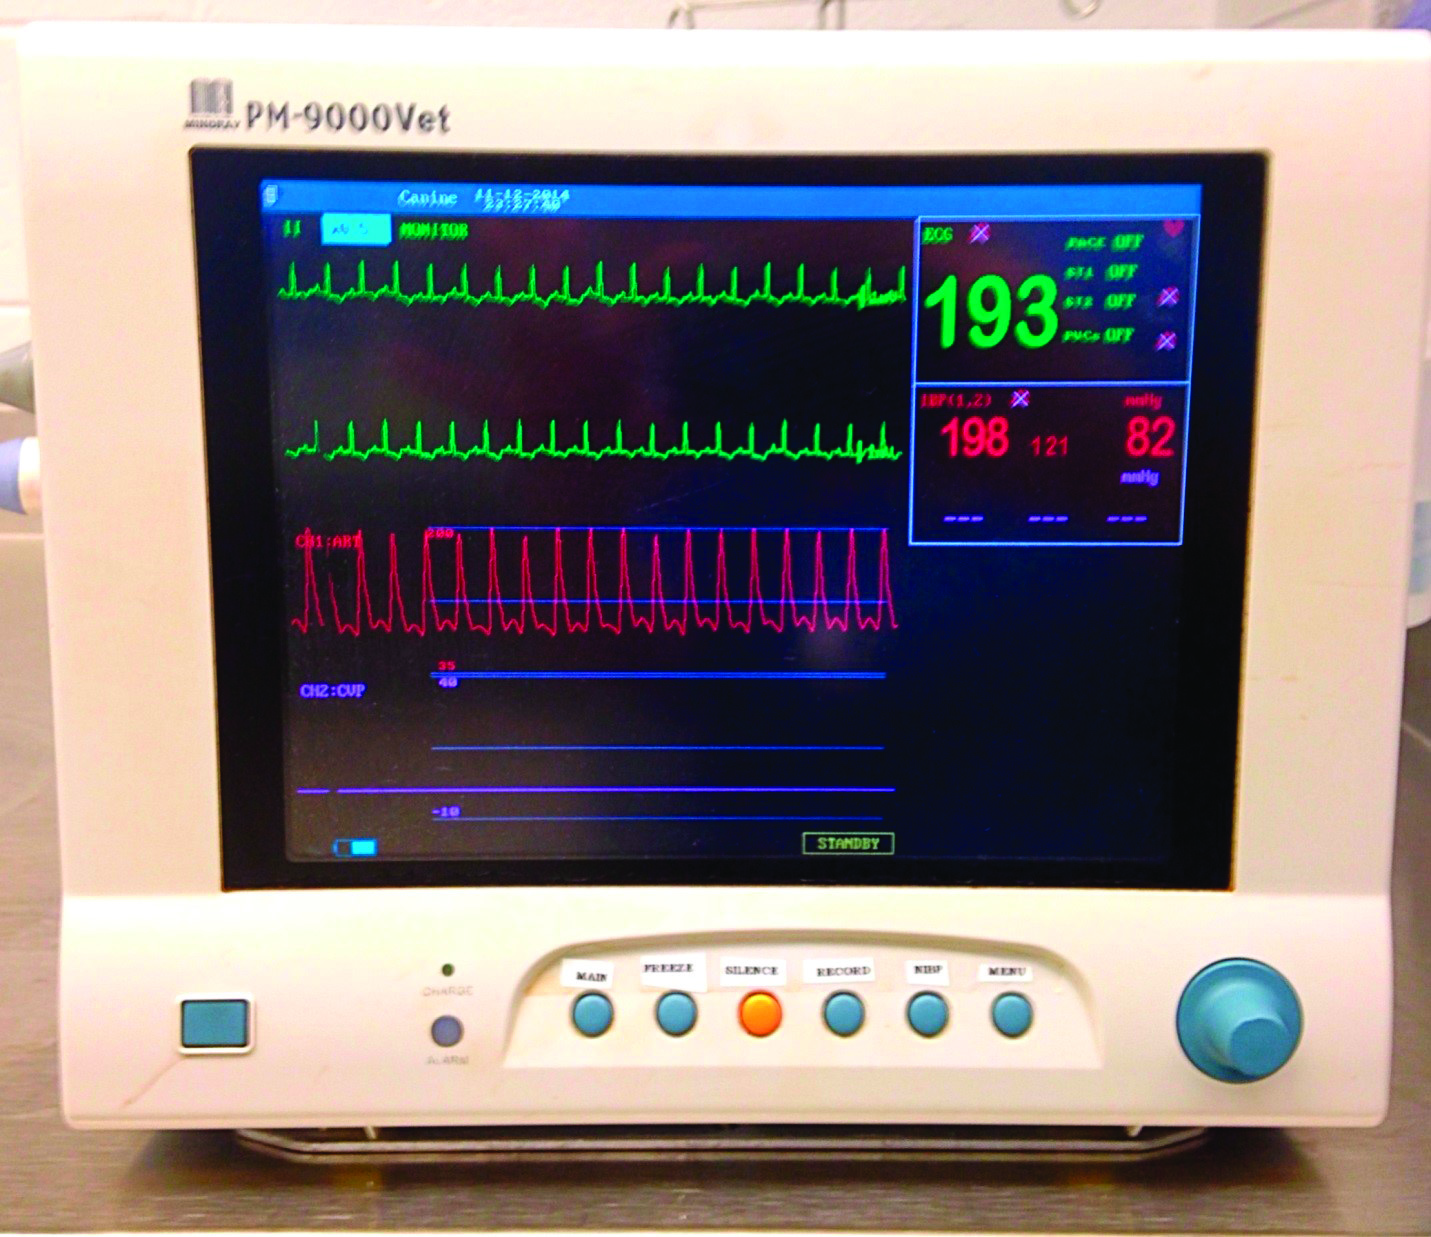 Today's Technician: Blood Pressure Monitoring From a Nursing